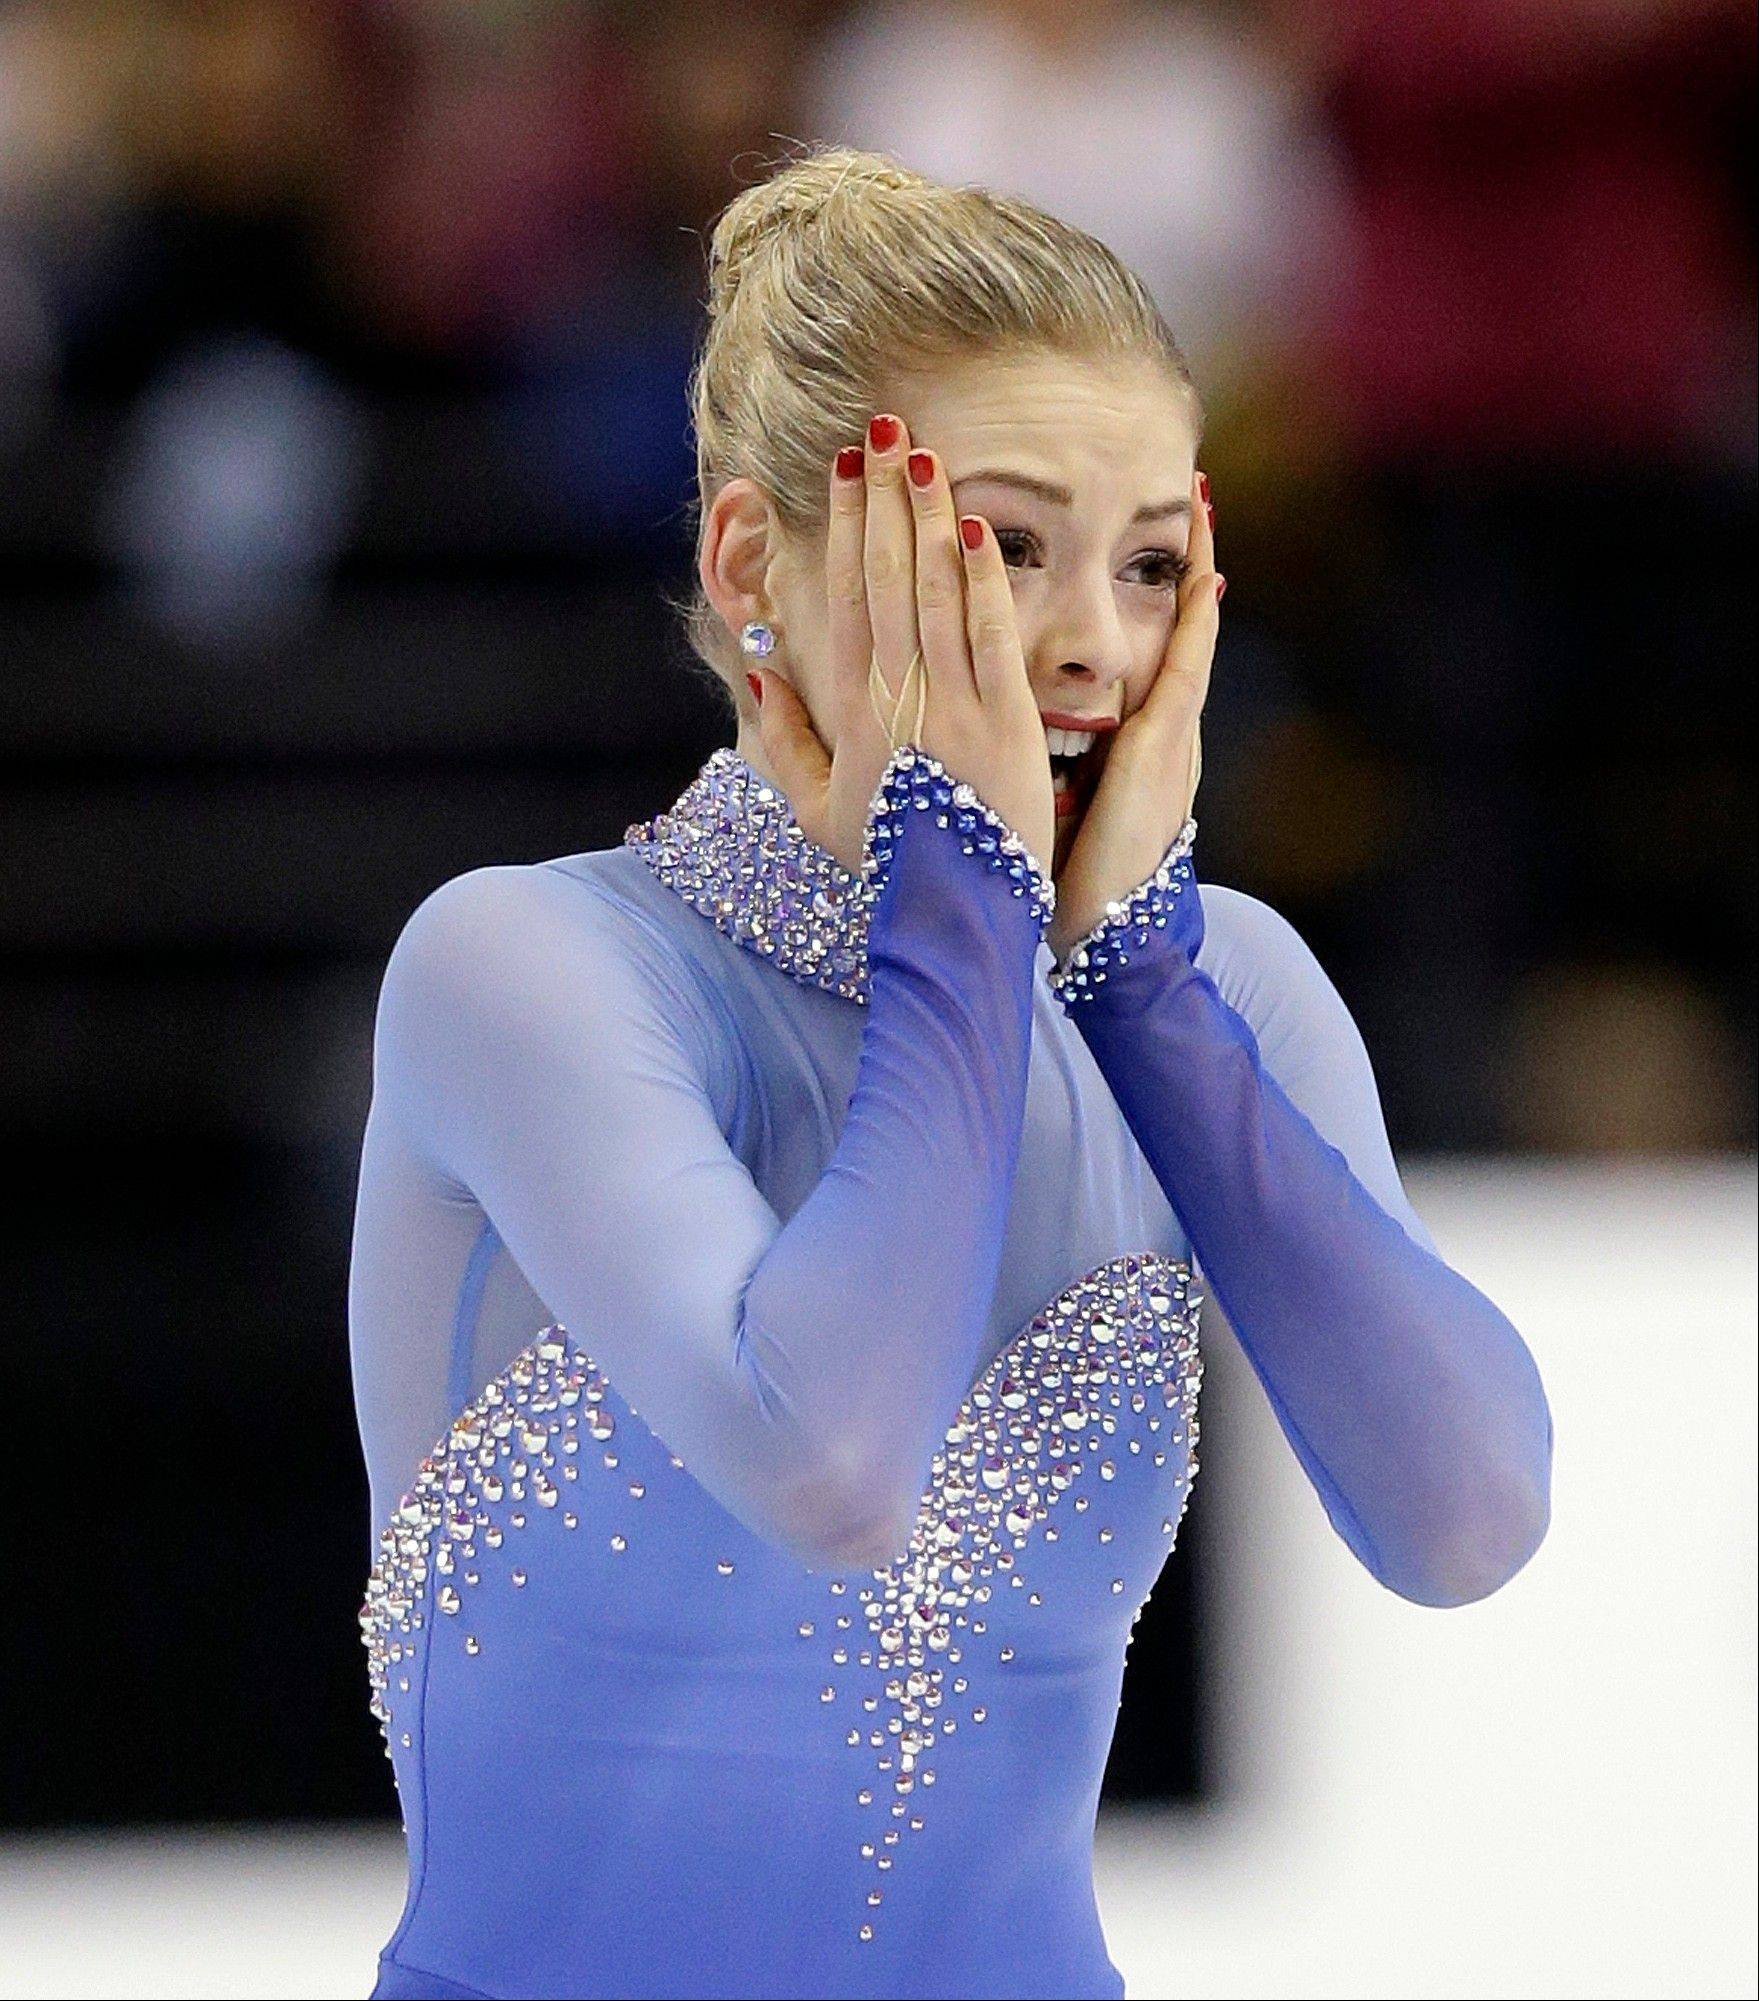 Gracie Gold reacts after skating in the women's free skate at the U.S. Figure Skating Championships Saturday in Boston. Gold, 18, won her first U.S. title, posting 211.69 points to easily win the competition. The U.S. Olympic team will be announced on Sunday.